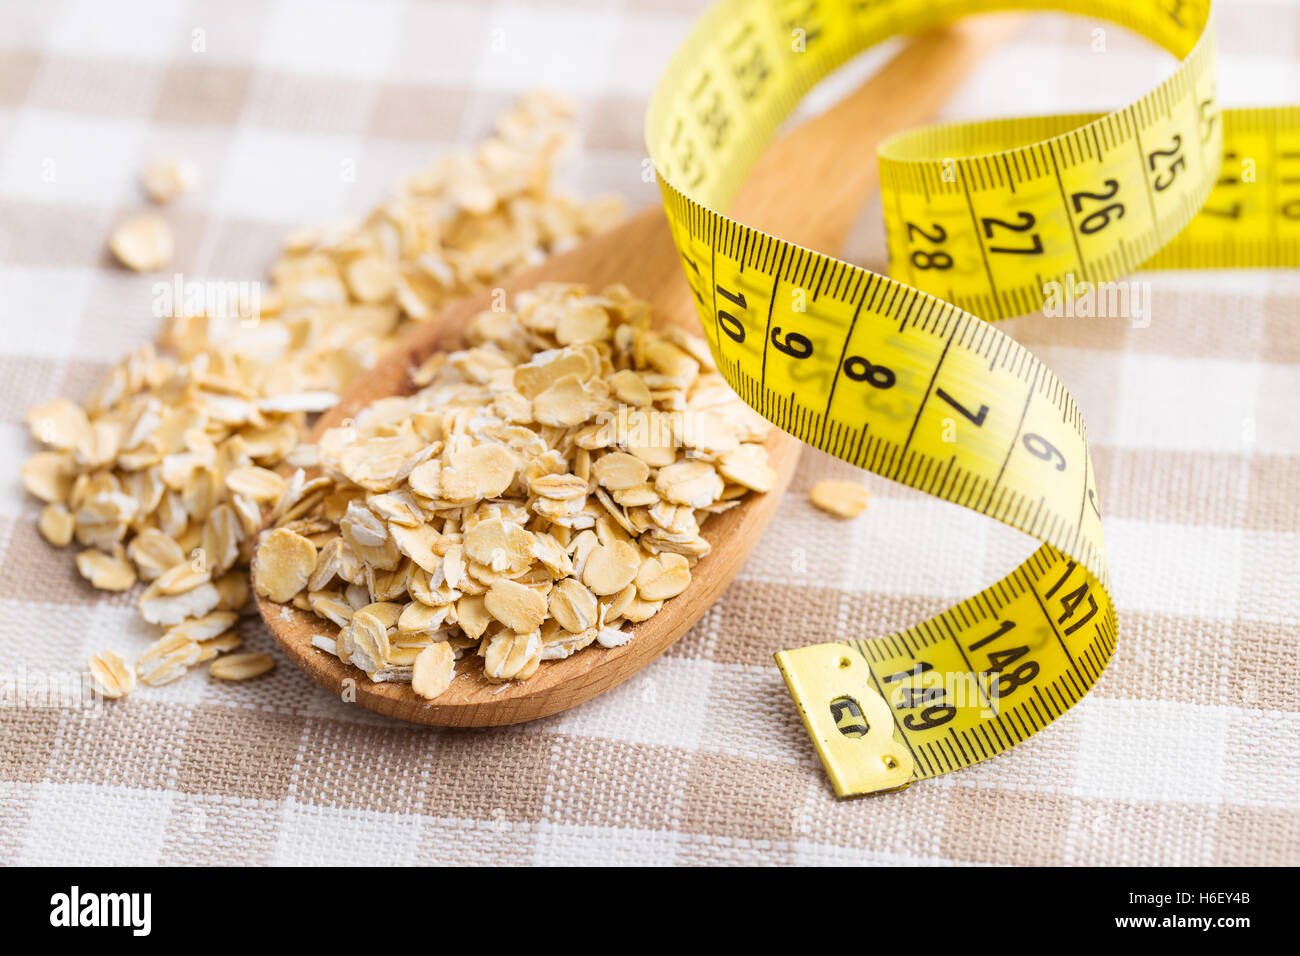 The diet concept. Oatmeal and measuring tape. - Stock Image